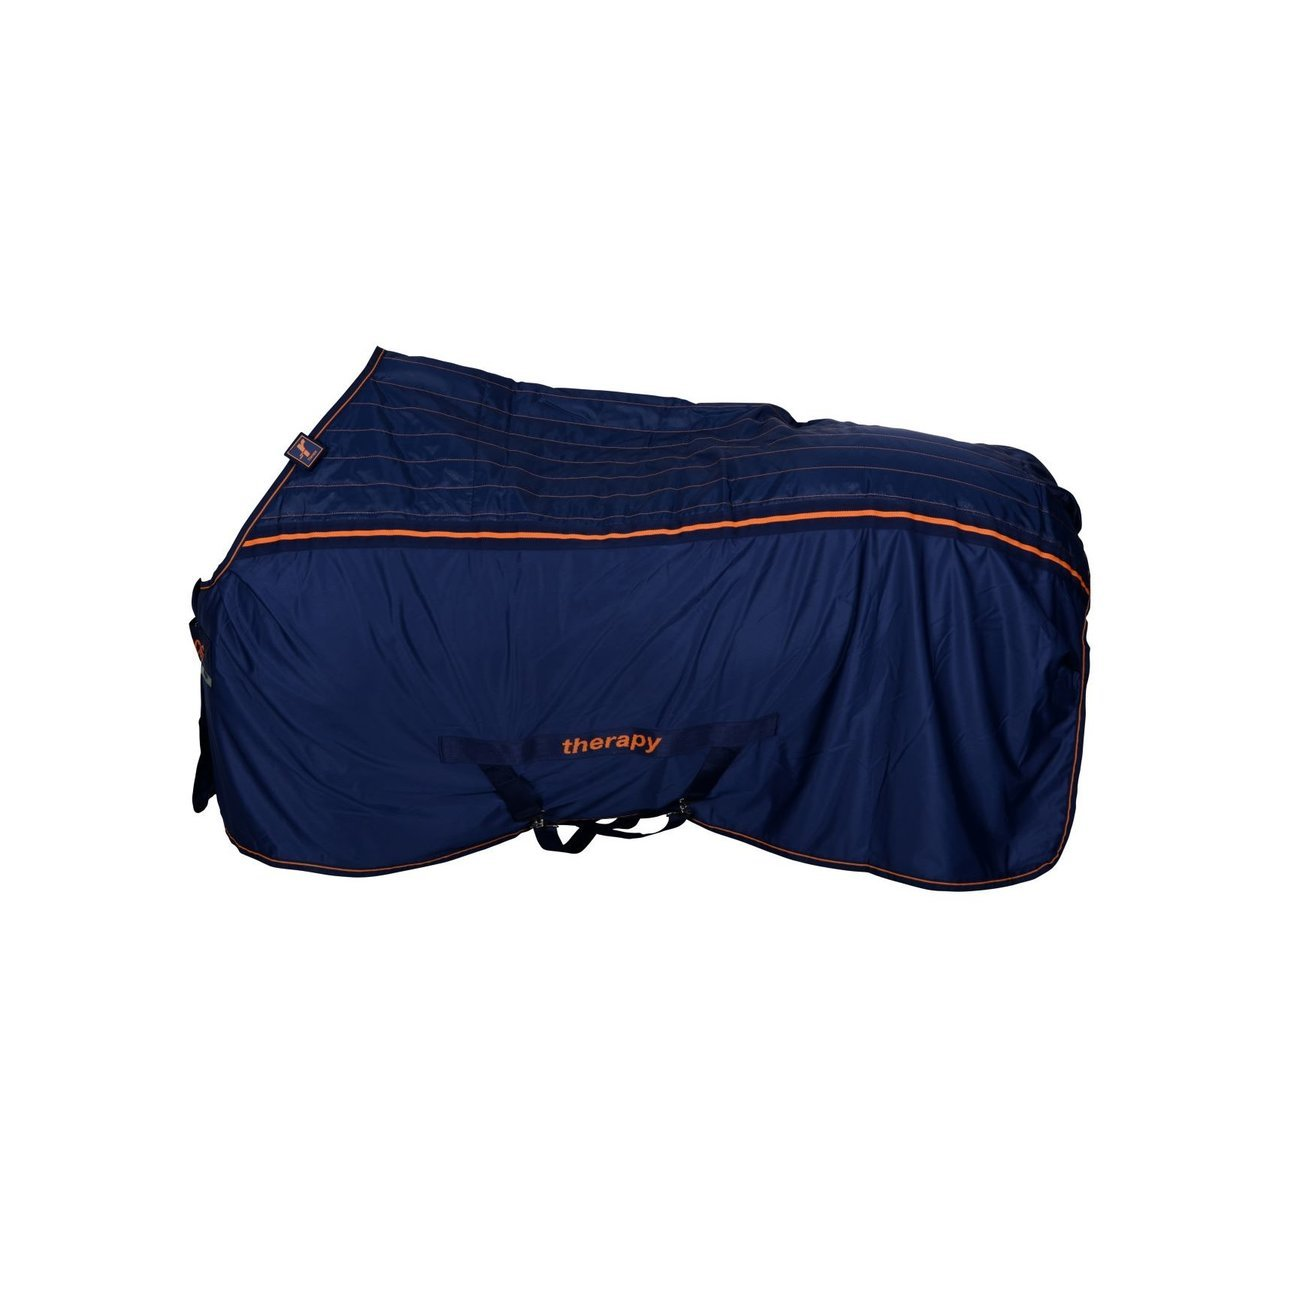 Bucas Recuptex Therapiedecke Pferd, Gr. 135 - Navy/Orange